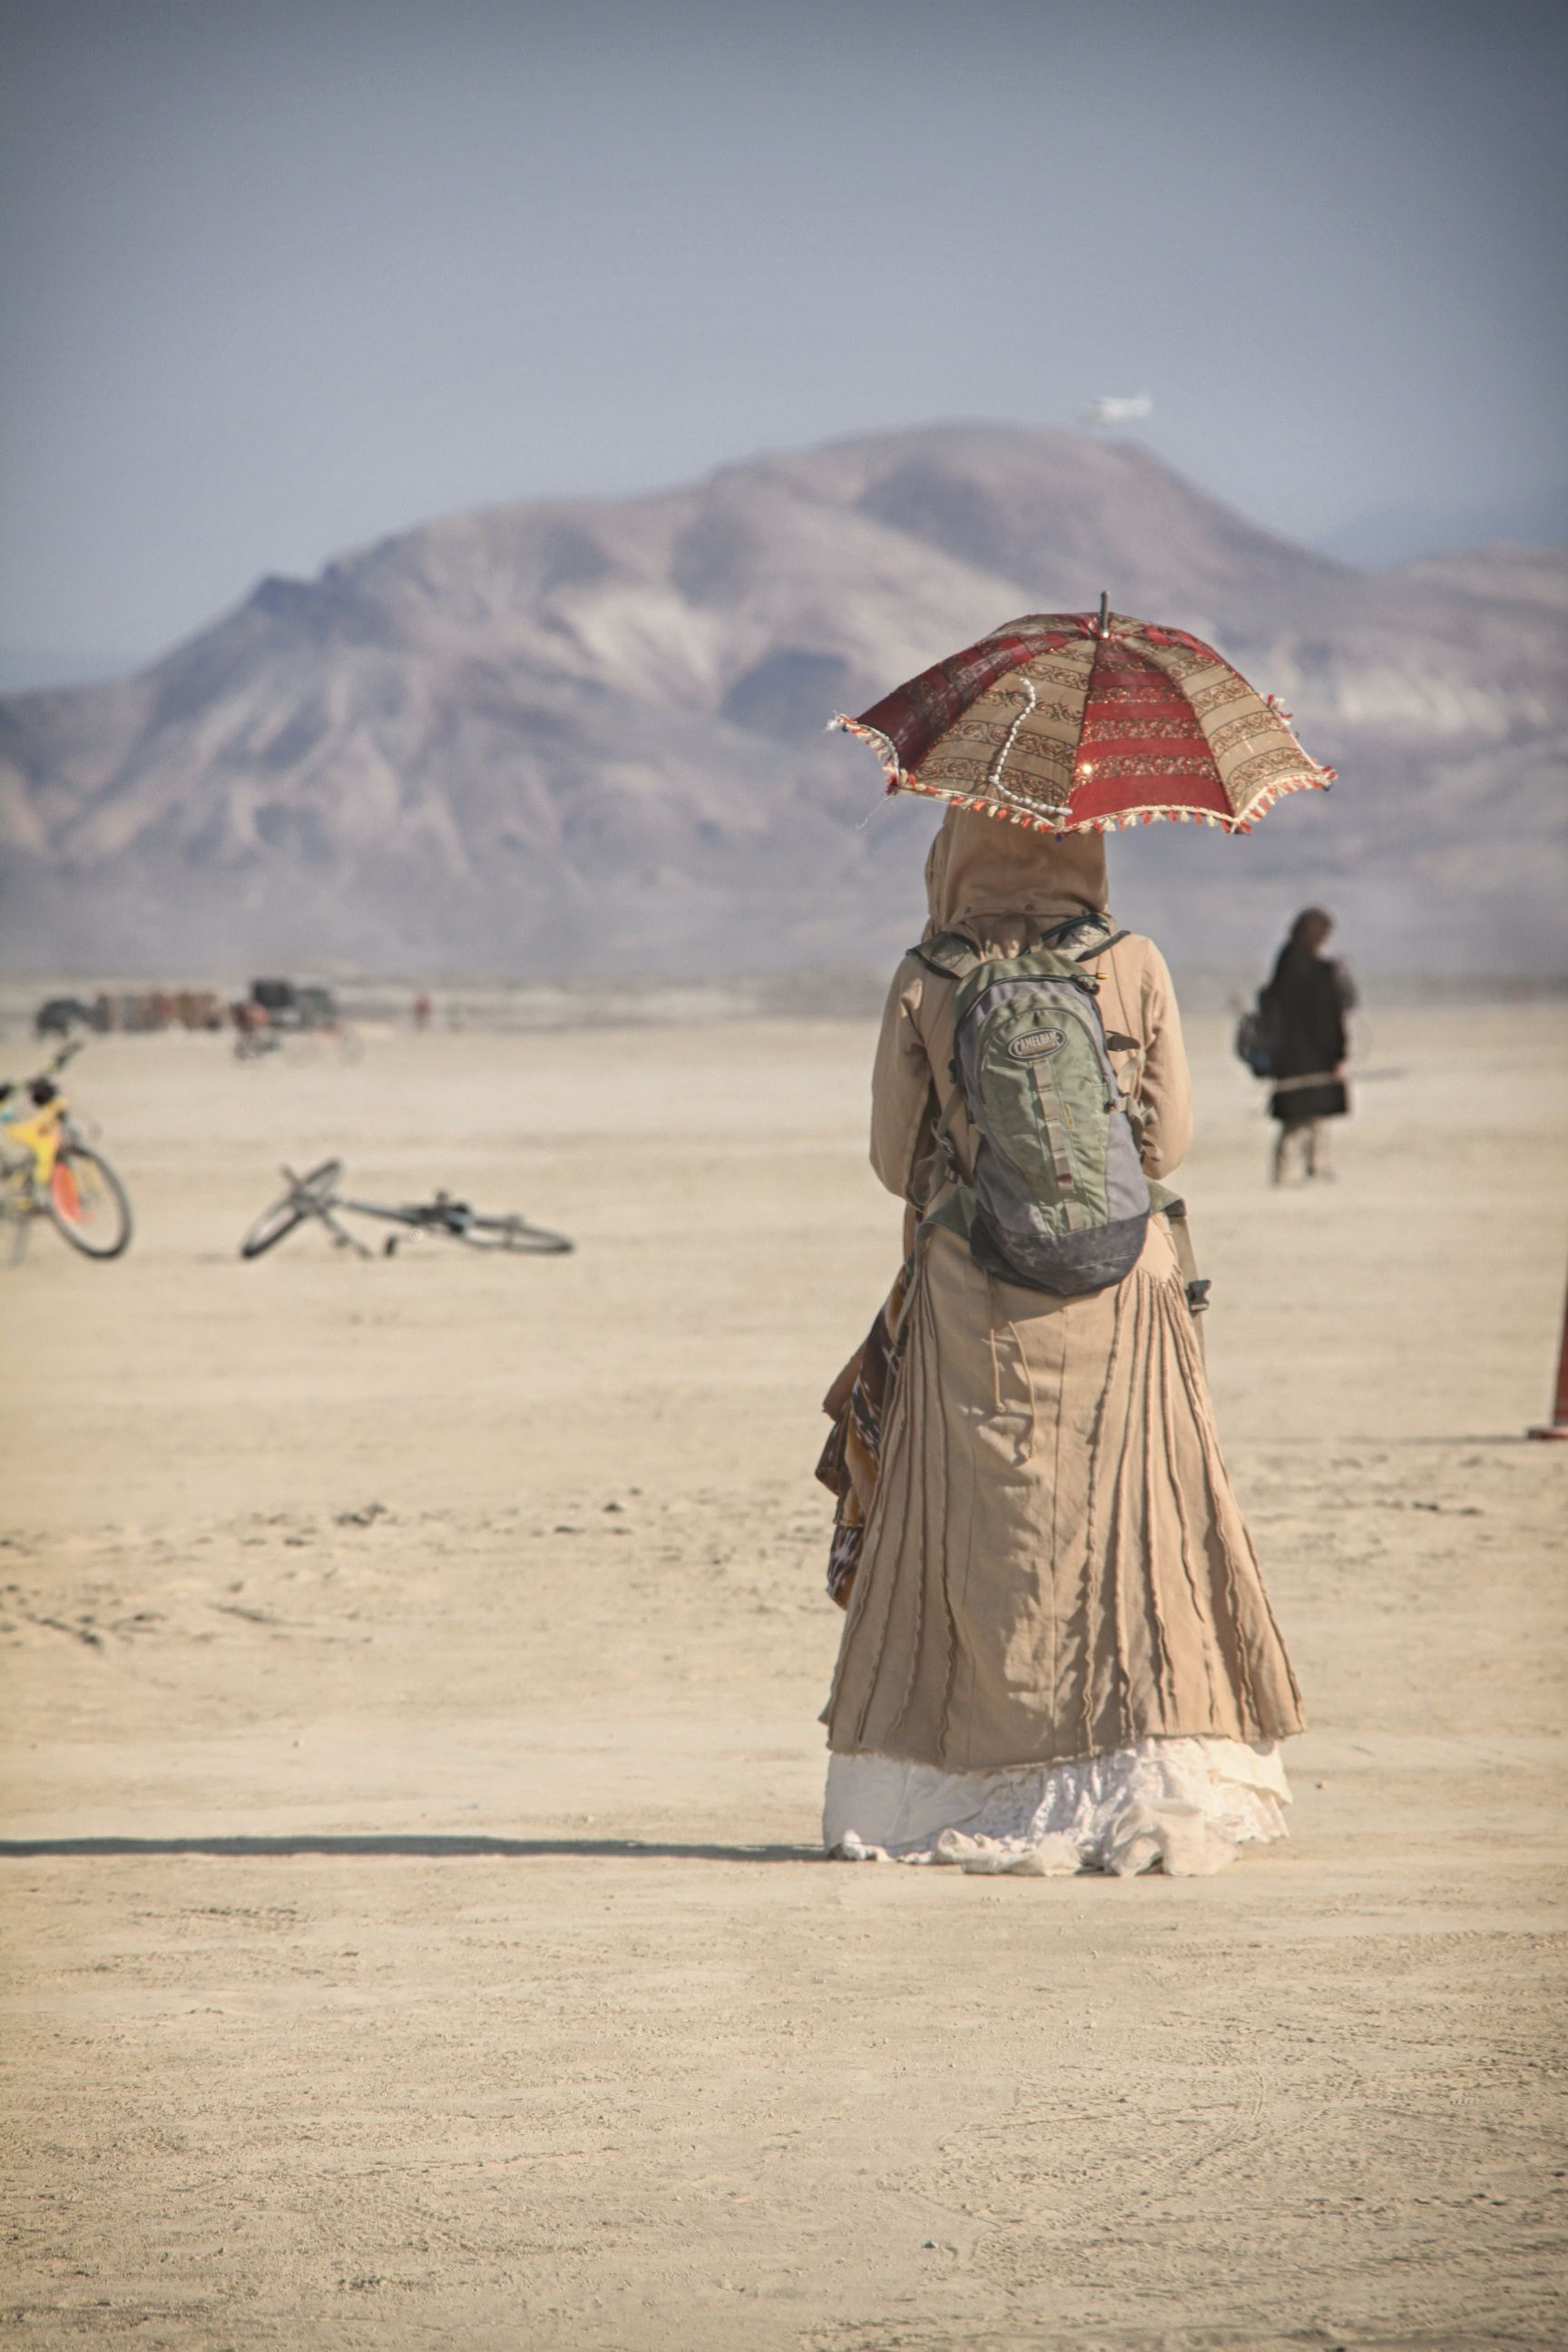 The lady in the desert